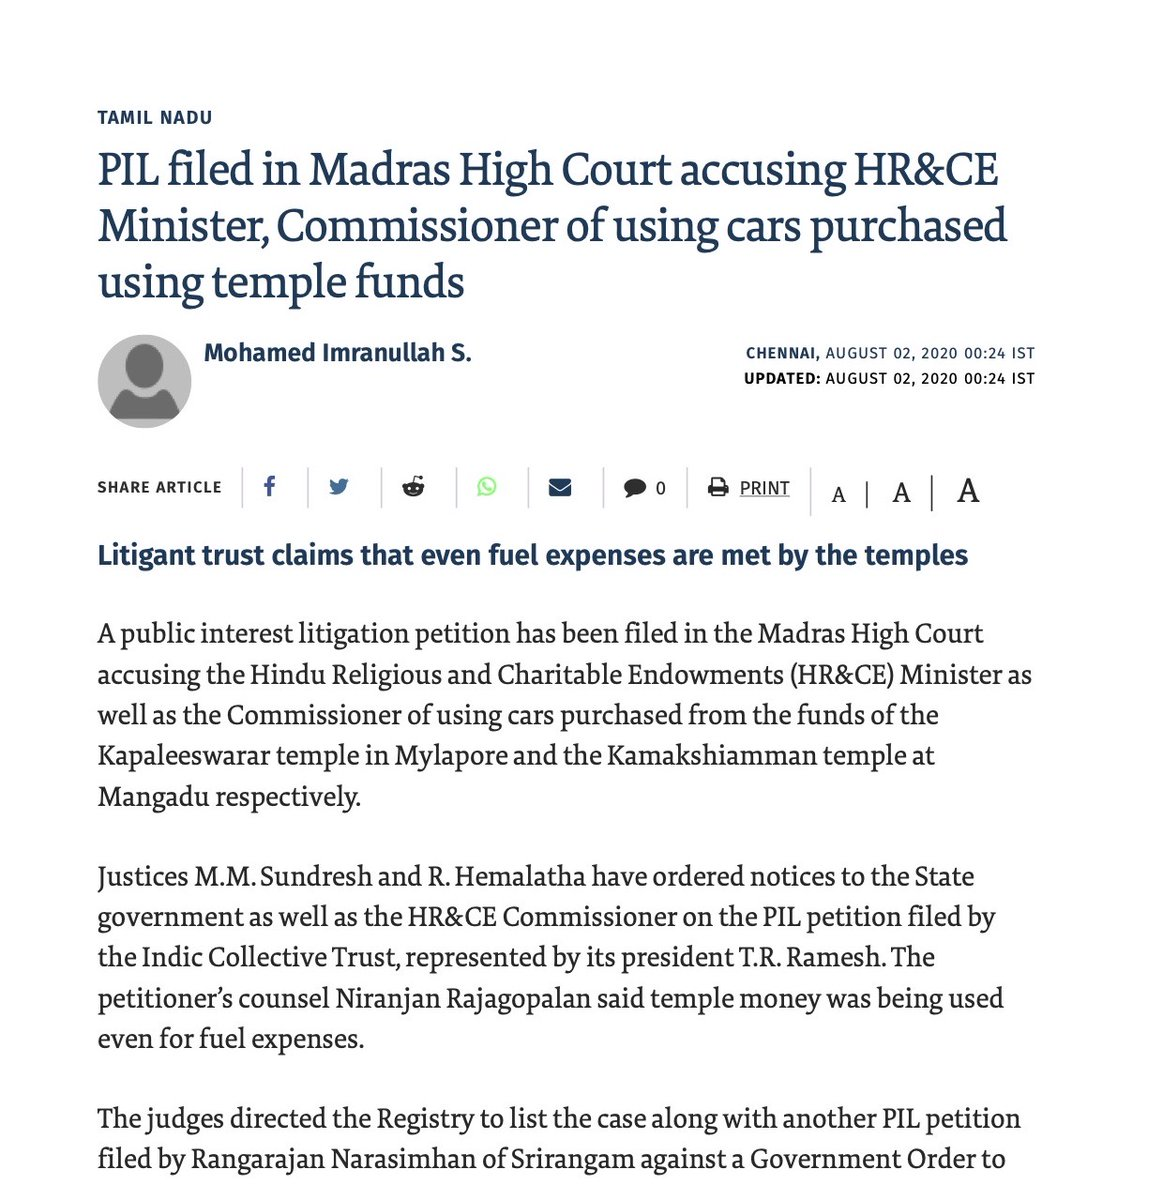 PIL filed by @indiccollective and I  accusing HR&CE Minister, Commissioner of using cars purchased using temple funds  @Swamy39 @jsaideepak @BJP4India @Mahesh10816 @RangarajPandeyR @TVMohandasPai @anuraag_saxena @vhsindia @vsclekha @jagdishshetty